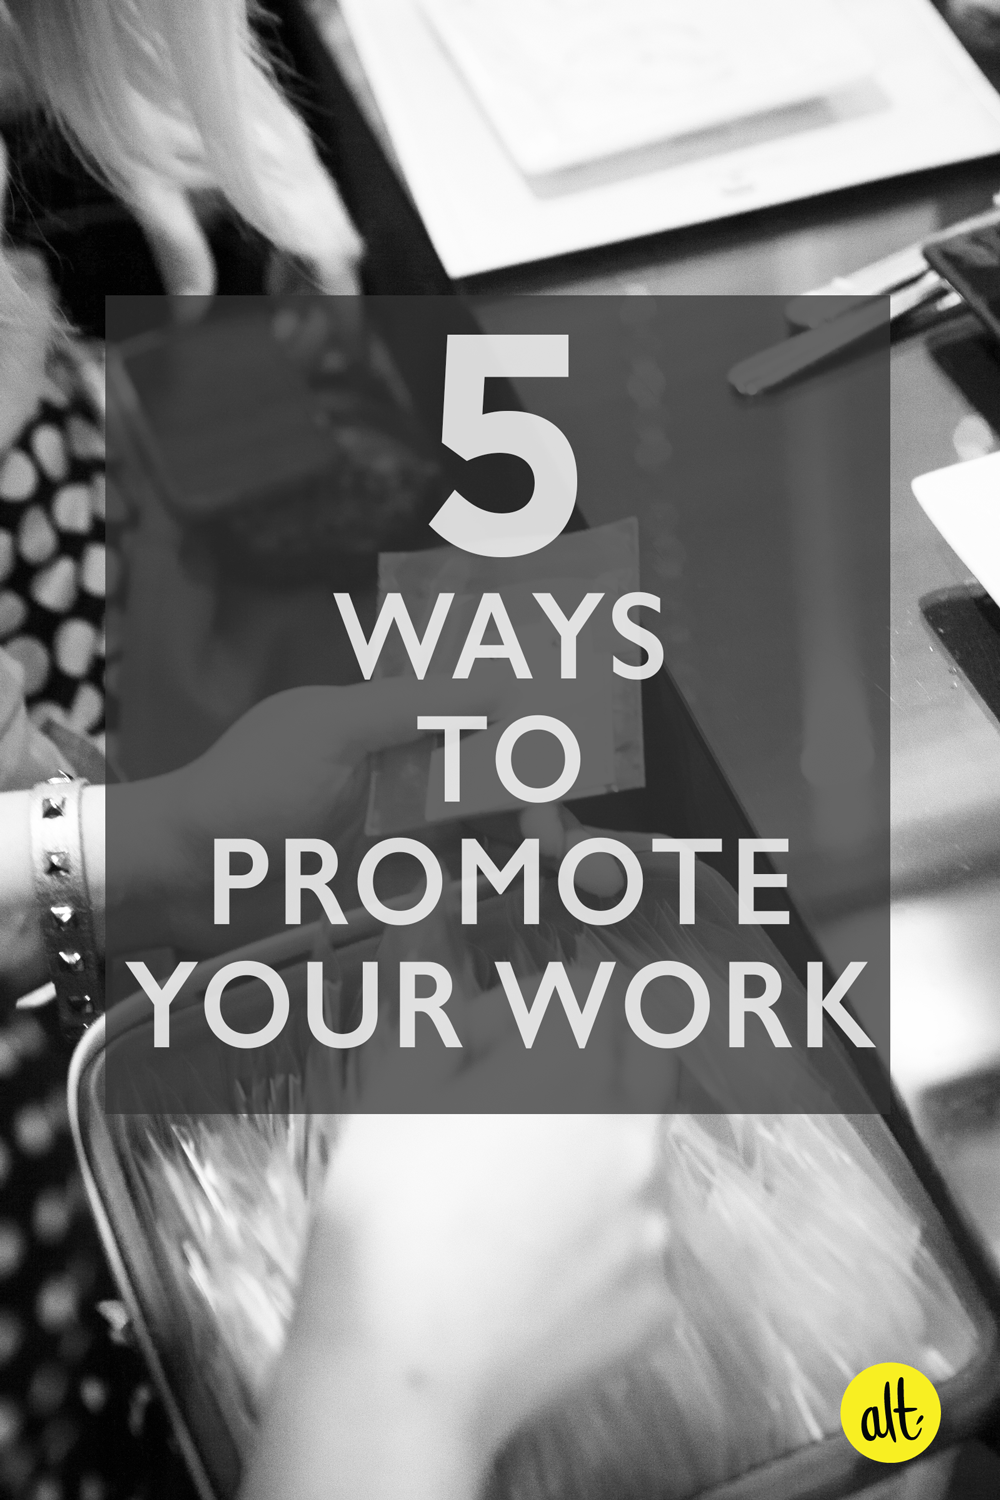 5-ways-to-promote-your-work